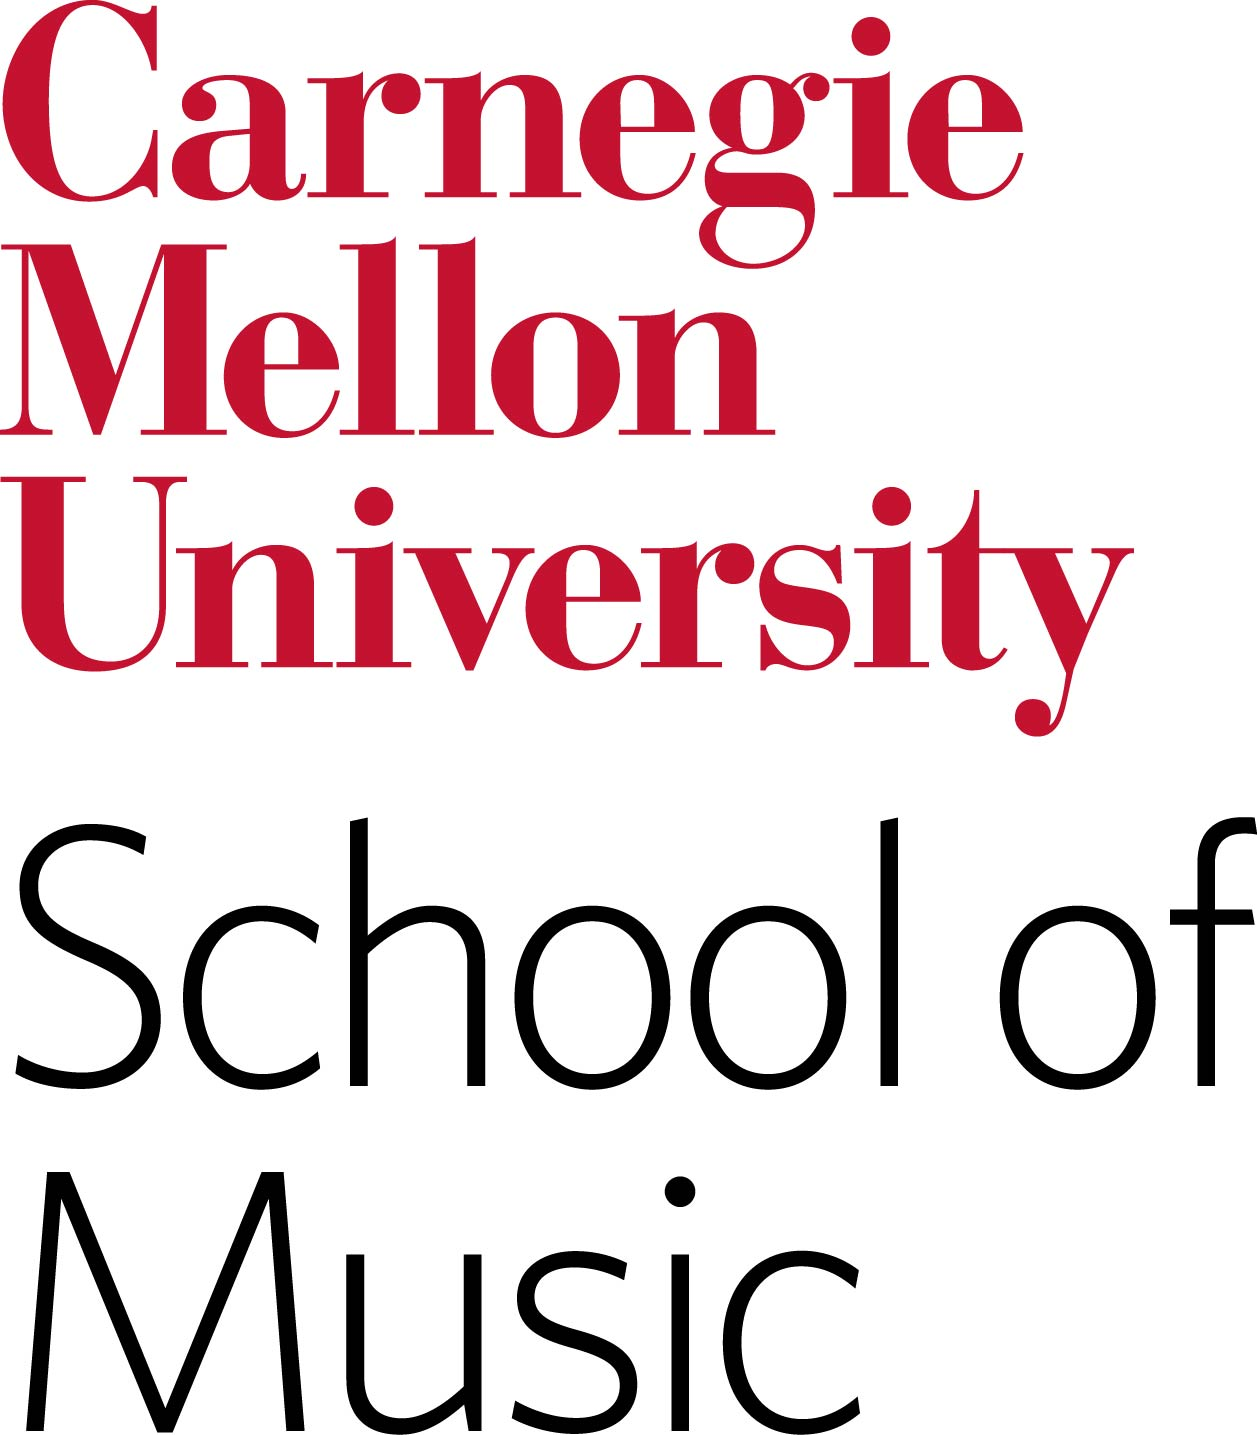 Carnegie Mellon School of Music